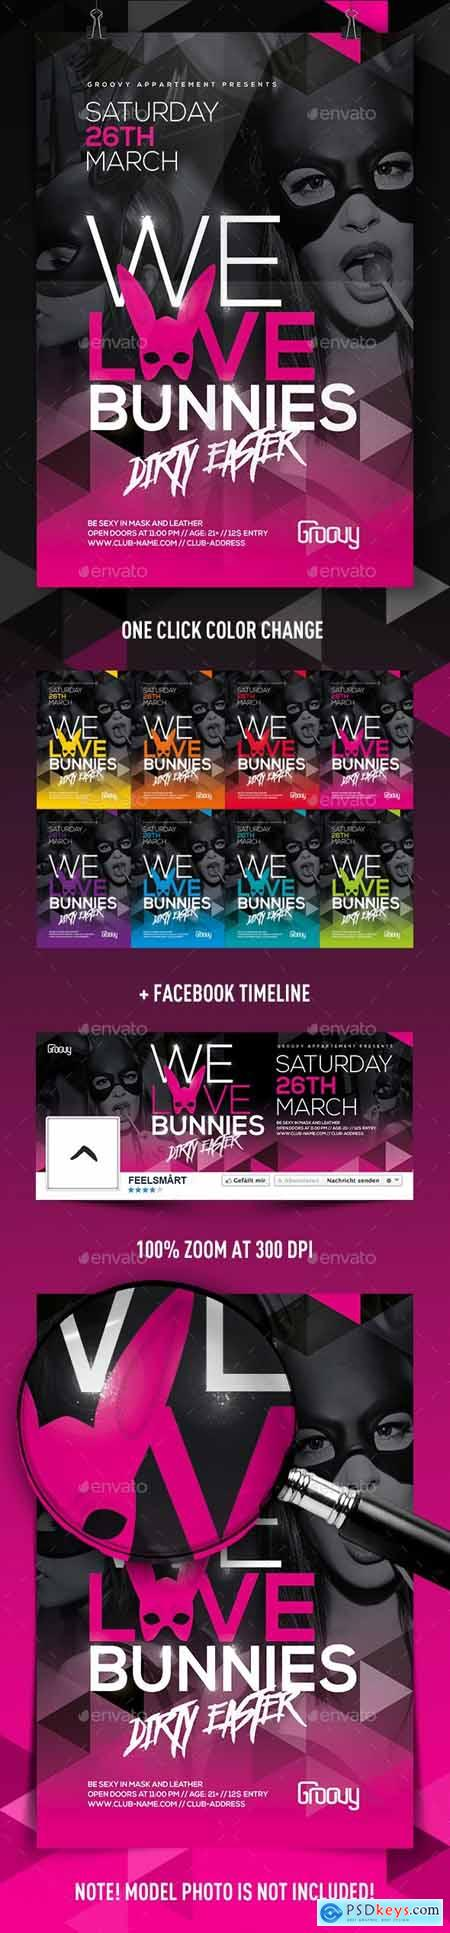 We Love Bunnies Flyer 14833979